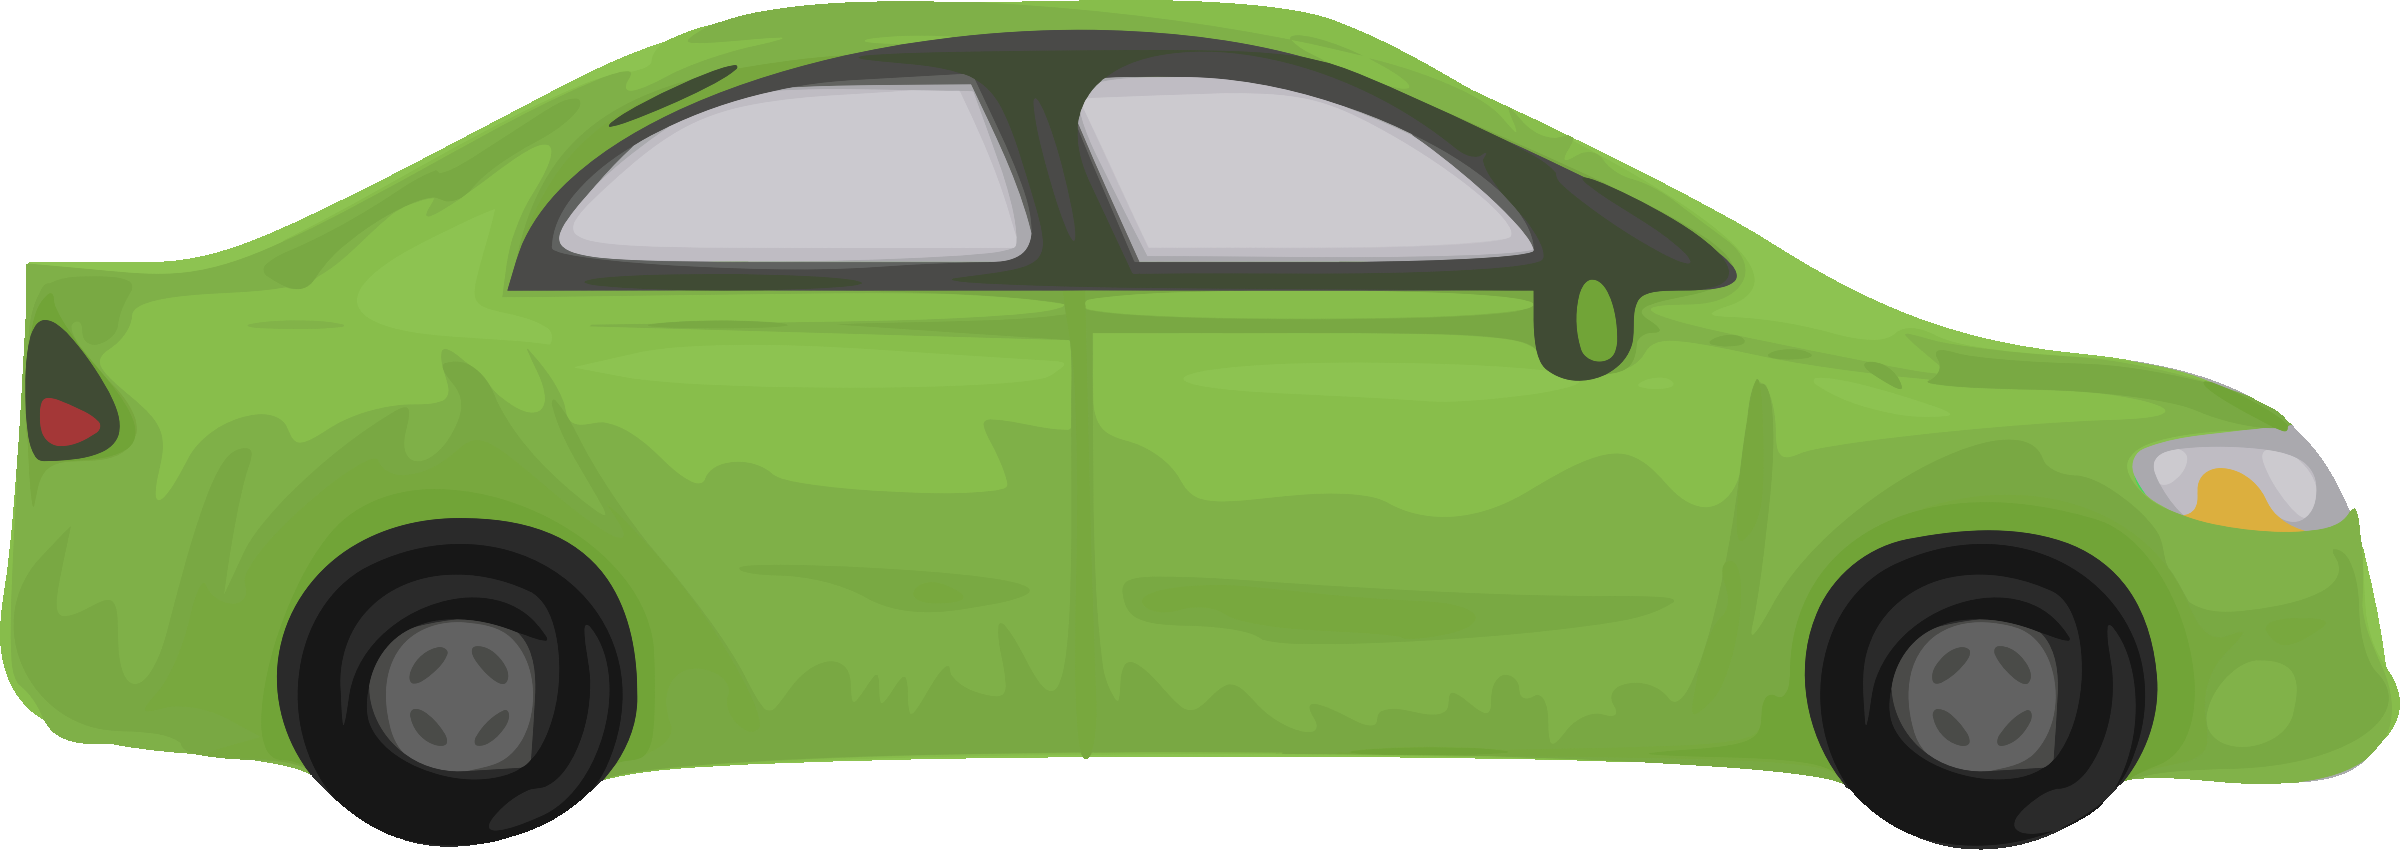 Car clipart green png black and white stock Clipart - Rough car (green) png black and white stock